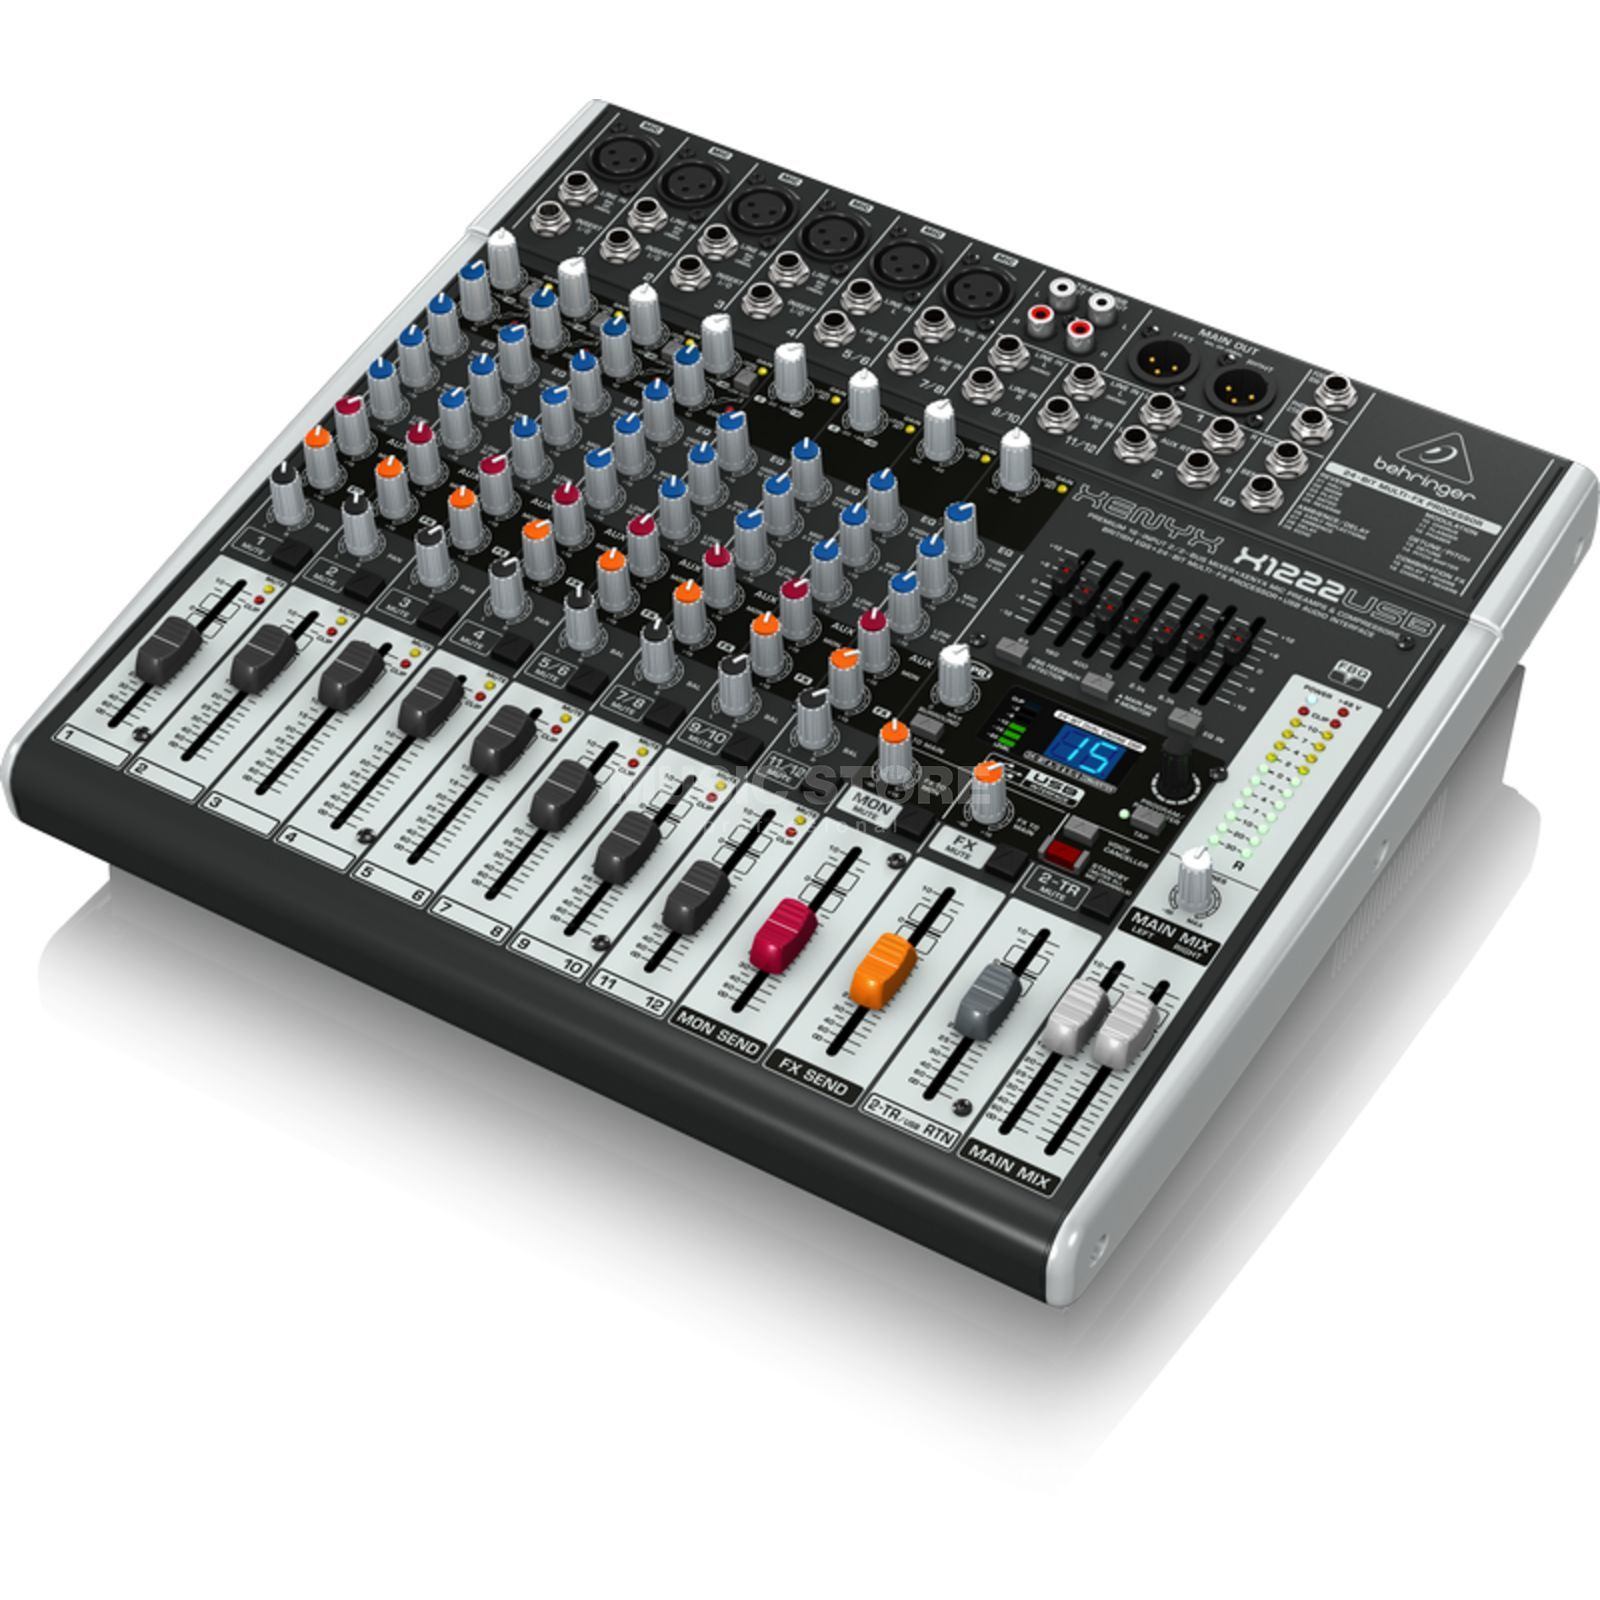 behringer xenyx x1222usb 16 channel mixer with usb audio interface. Black Bedroom Furniture Sets. Home Design Ideas